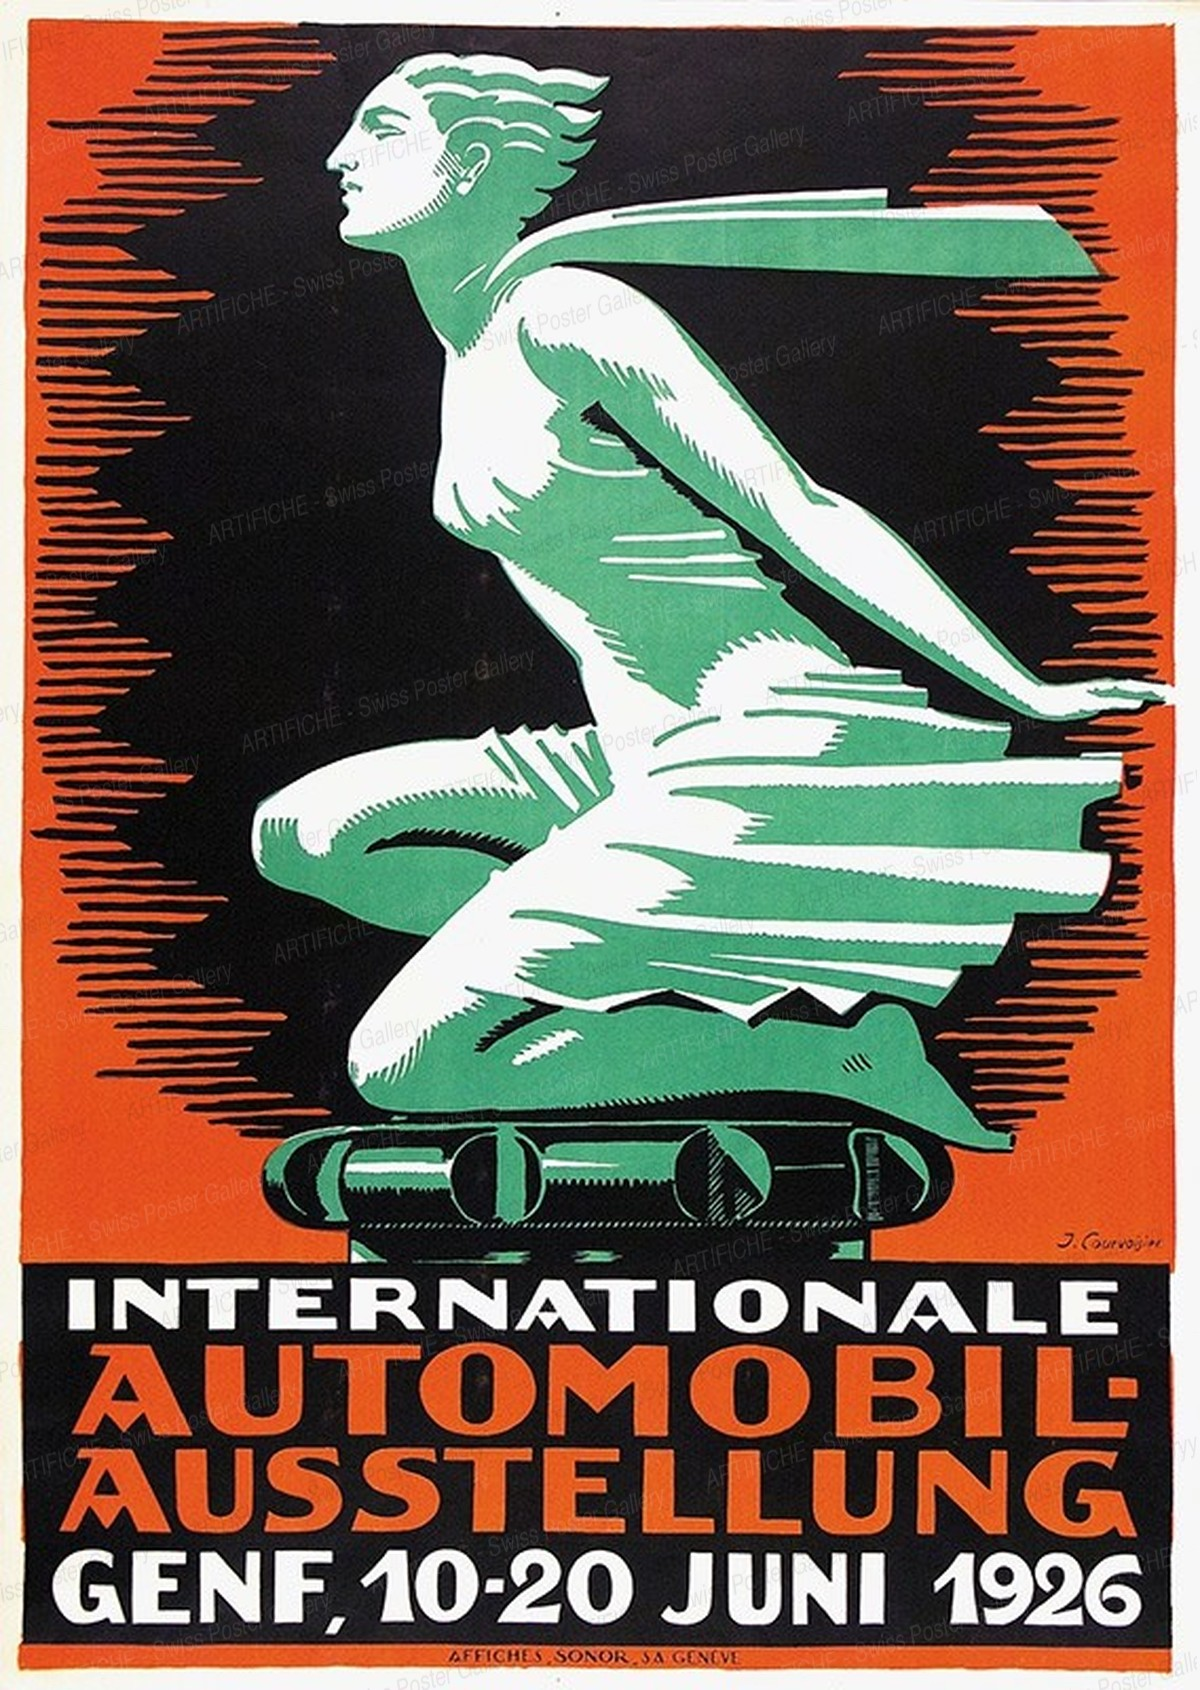 Internationale Automobil-Ausstellung Genf, 10.-20. Juni 1926, Jules-Ami Courvoisier